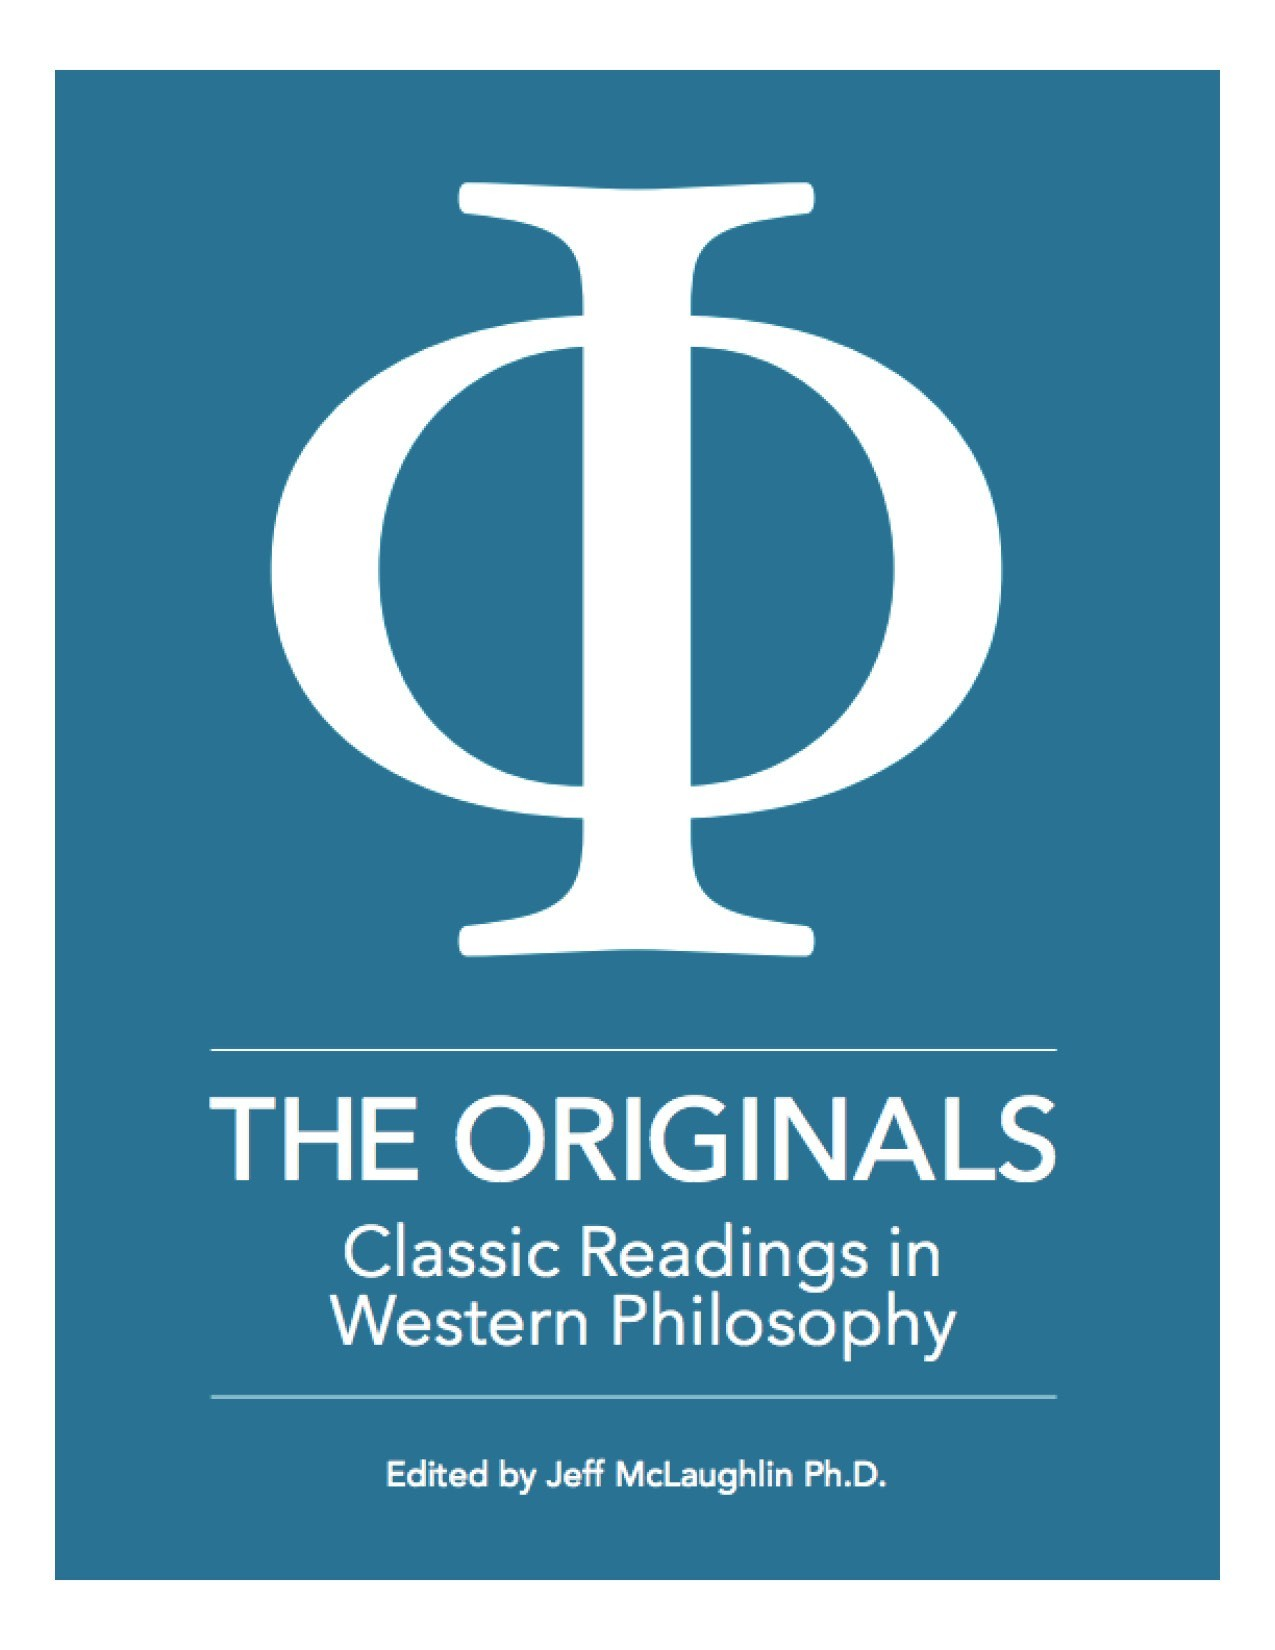 Cover image for The Originals: Classic Readings in Western Philosophy